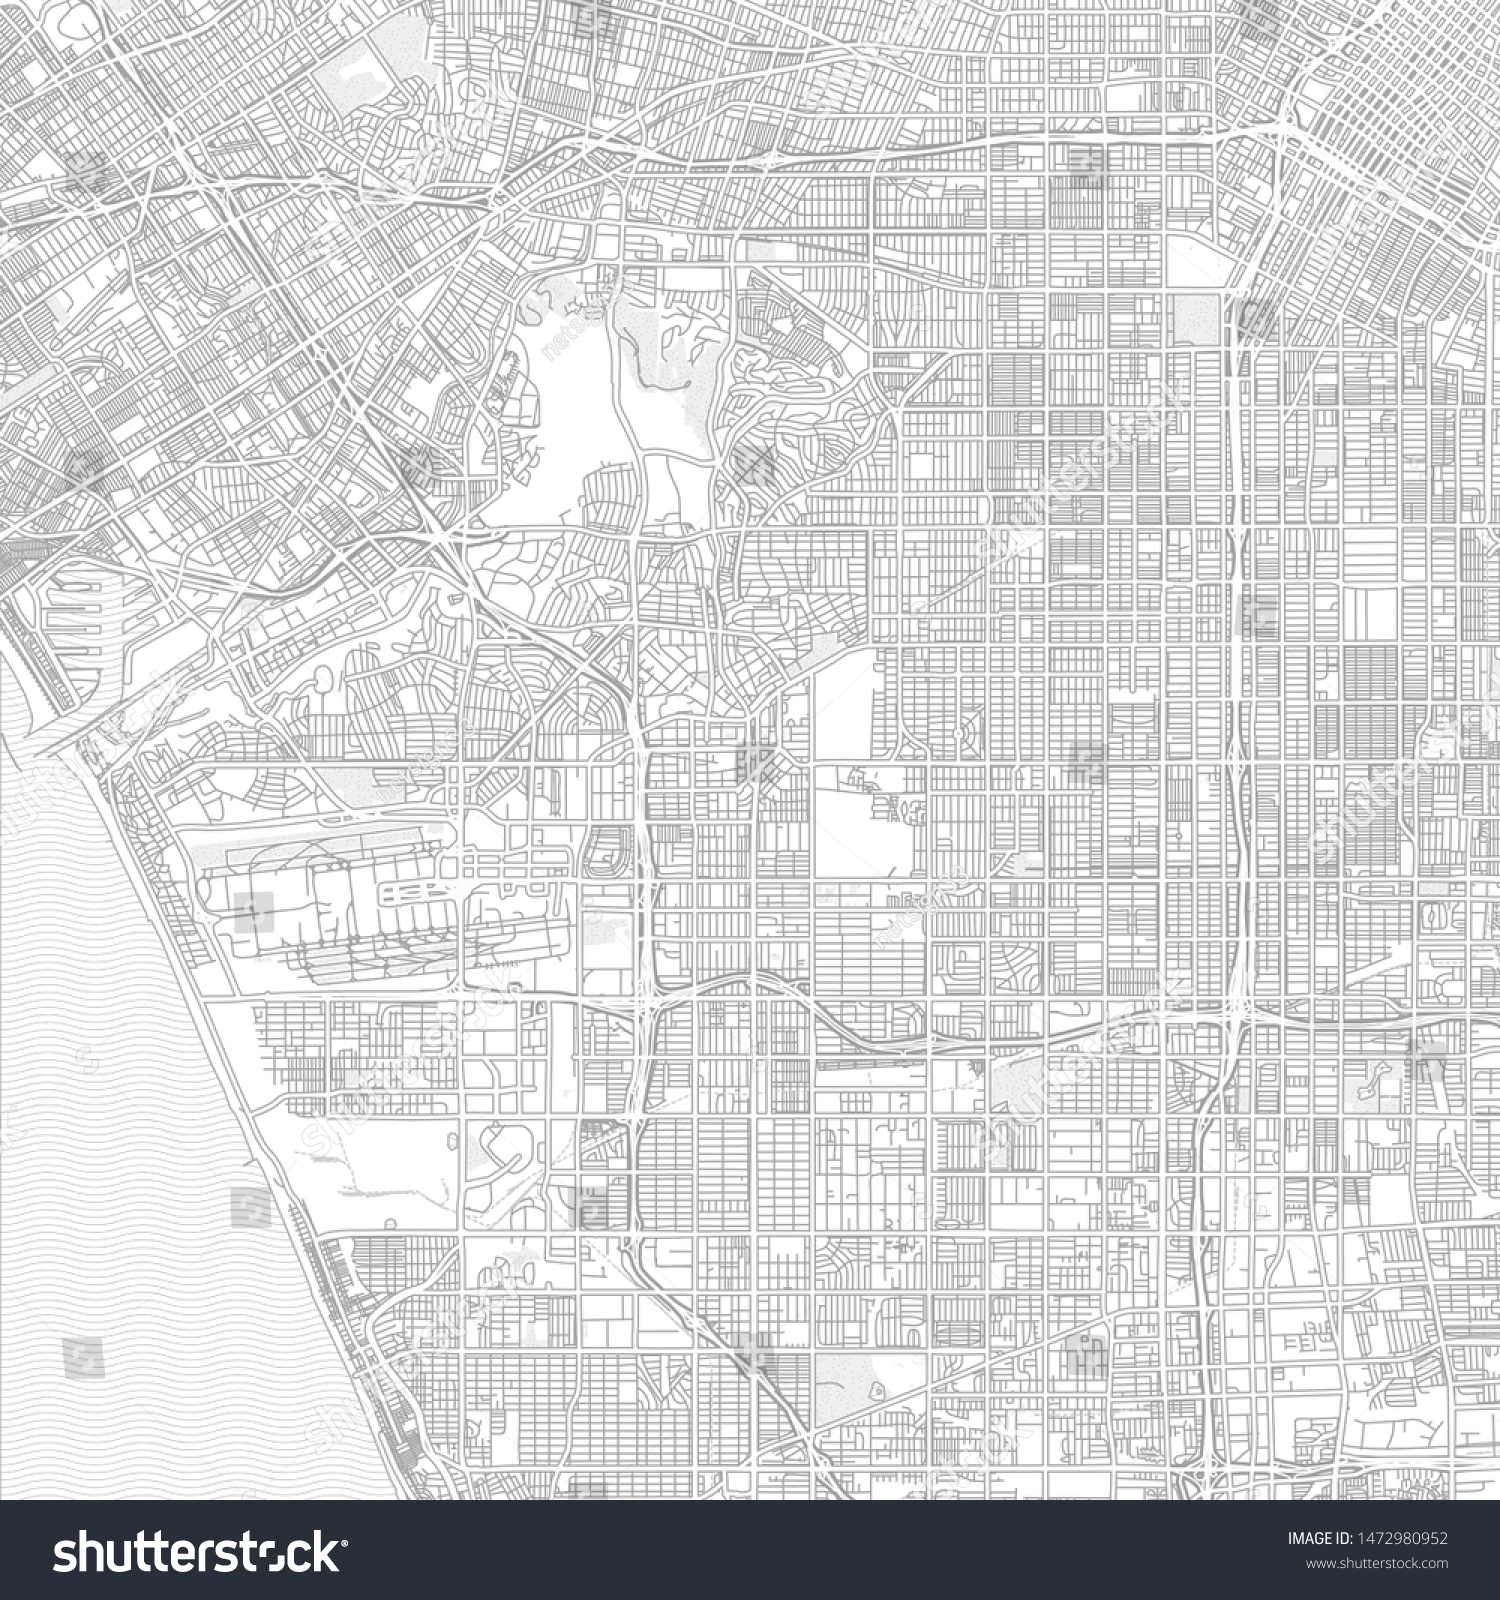 Inglewood California Usa Bright Outlined Vector Stock Vector ...